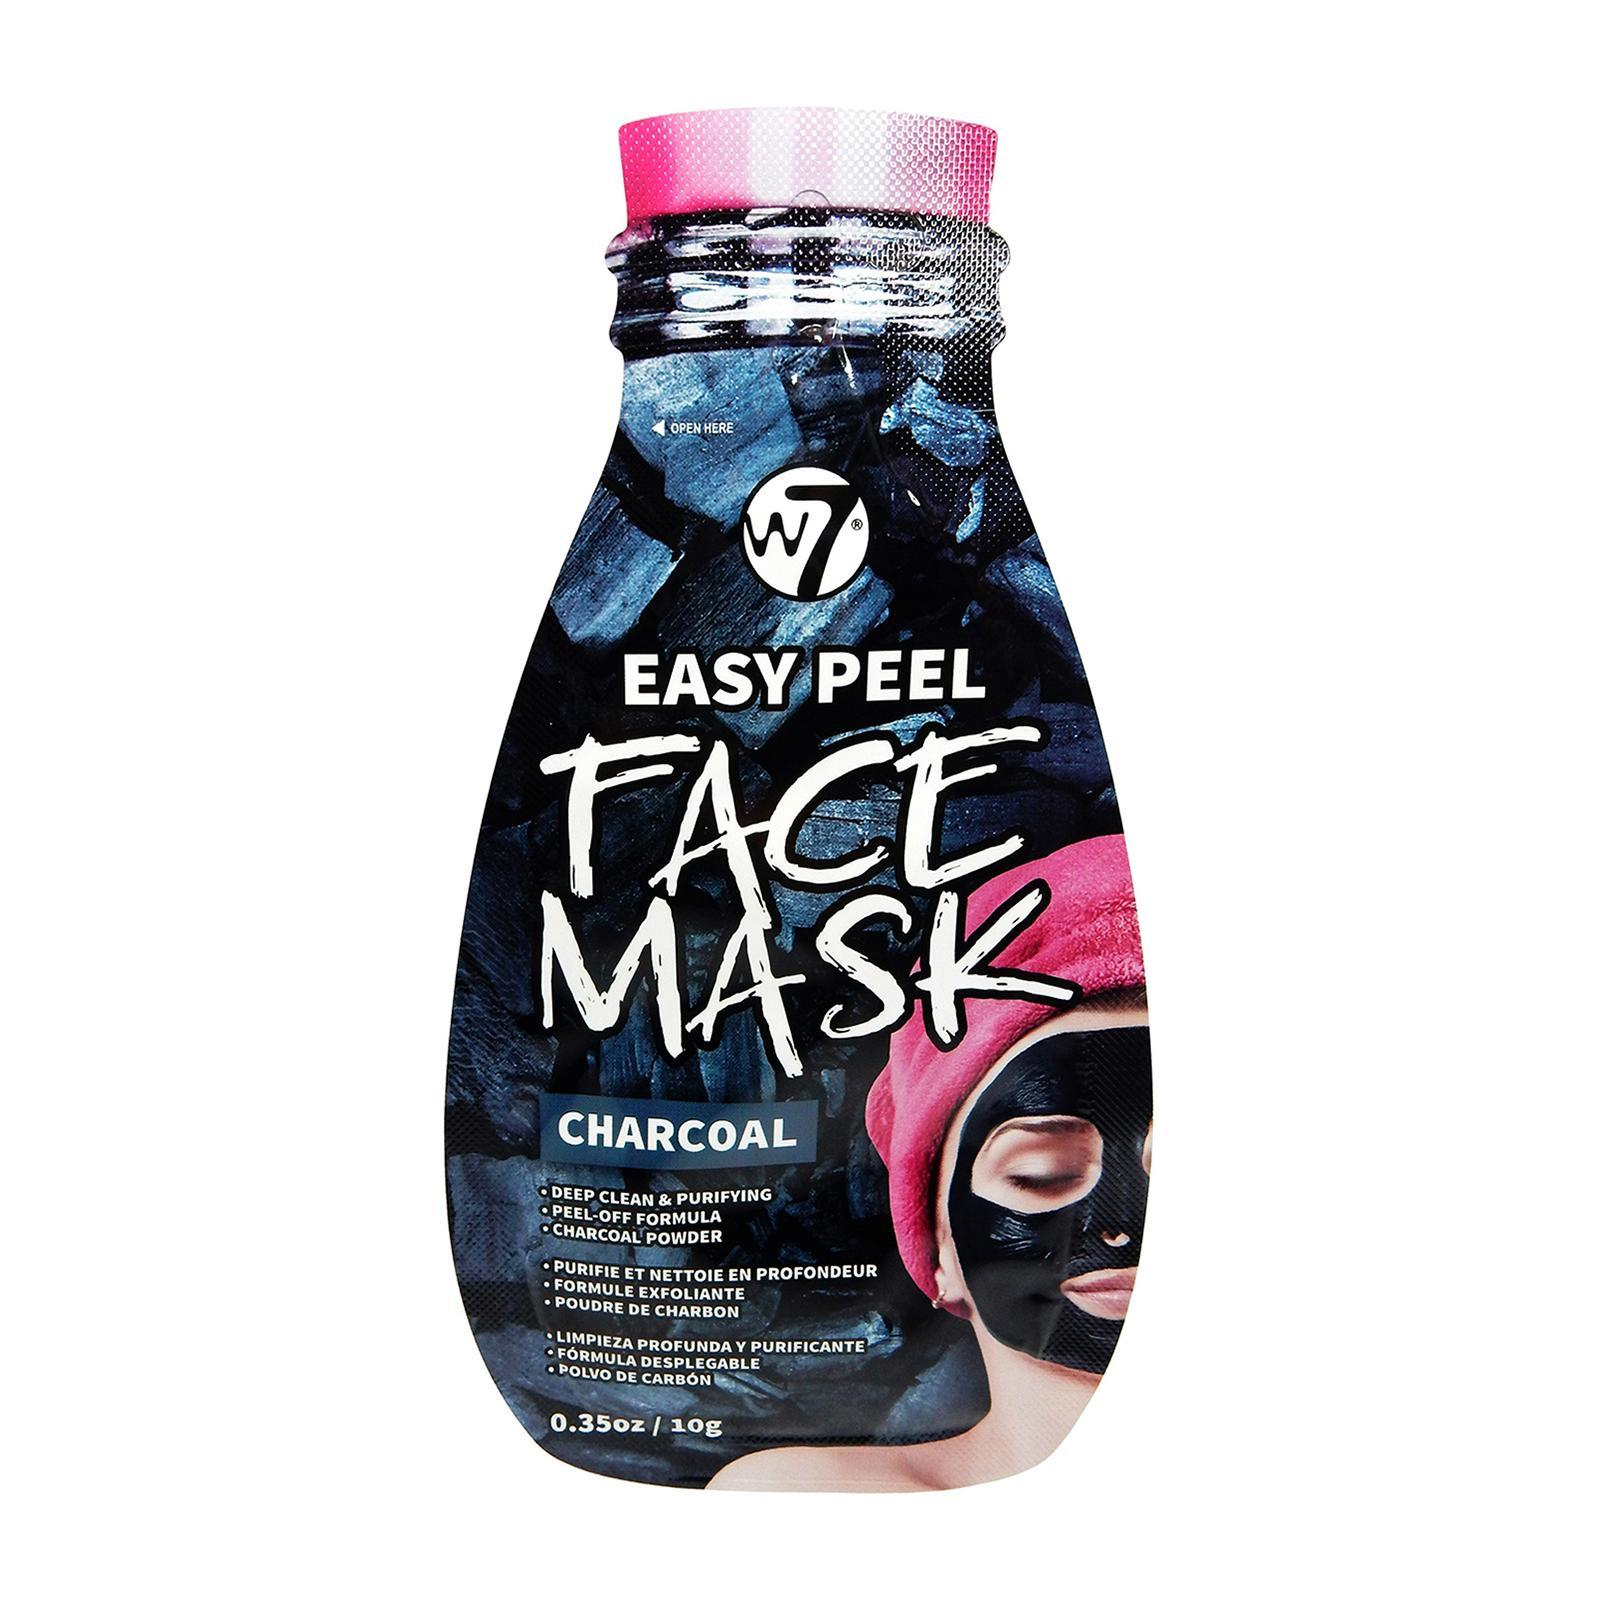 W7 Cosmetics Easy Peel Charcoal Face Mask